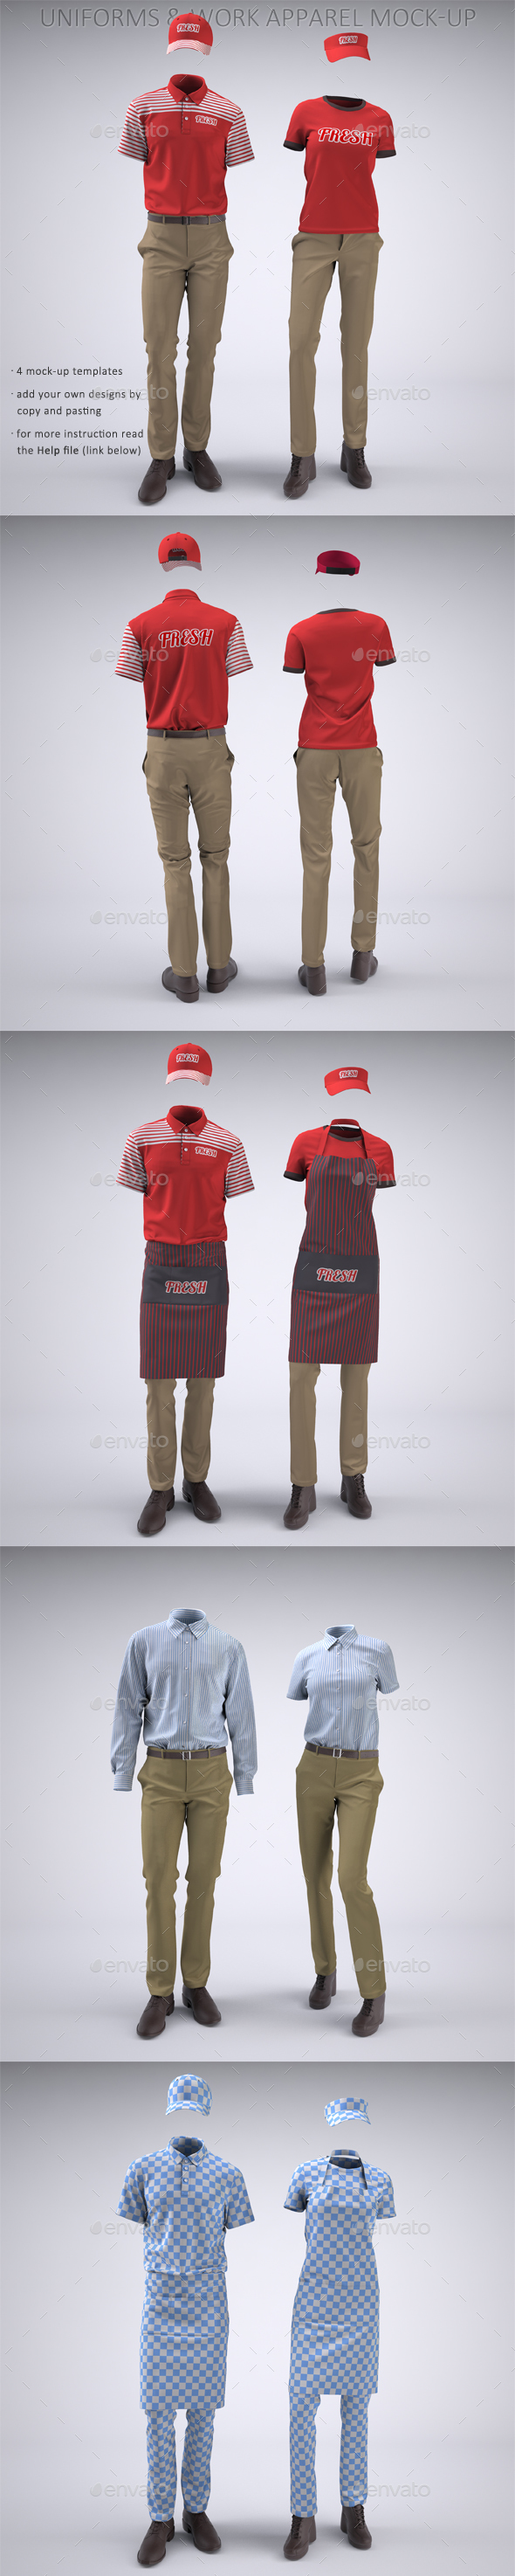 Food Service Uniforms and Retail Uniforms Mock-Up - Apparel Product Mock-Ups